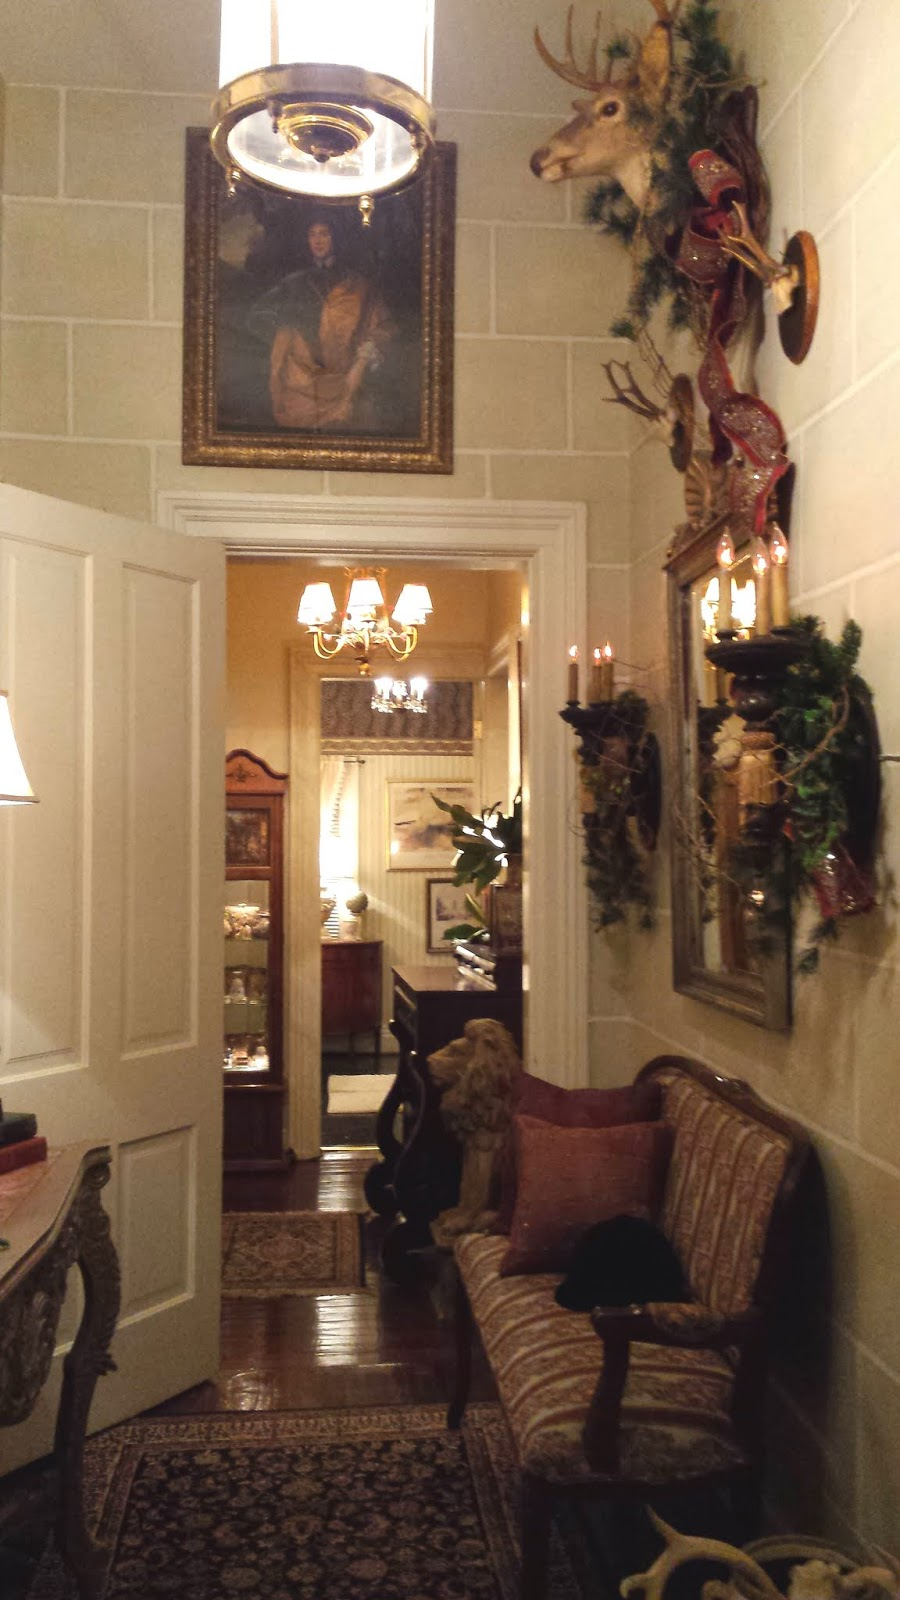 Eye For Design Bohemian Interiors And Accessories: Eye For Design: Decorating With Deer Mounts For A French